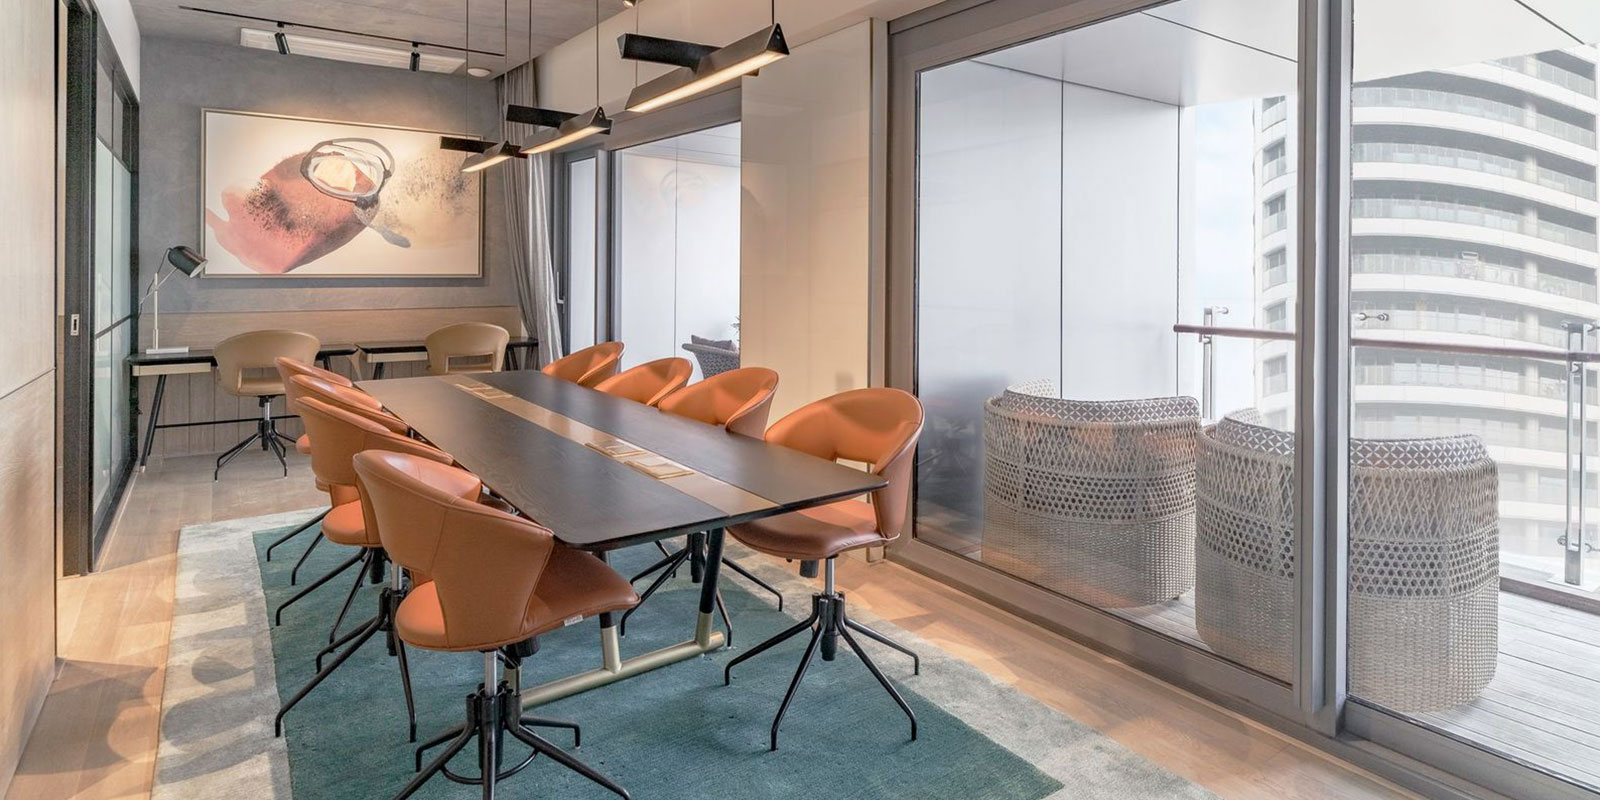 A versatile space to exchange ideas, to engage with like-minded people. This is the space dedicated to the 'work' aspect of the members club. Here you can find a comfortable and fully-equipped co-working area as well as two private meetings rooms for you to conduct meetings with discretion & privacy.